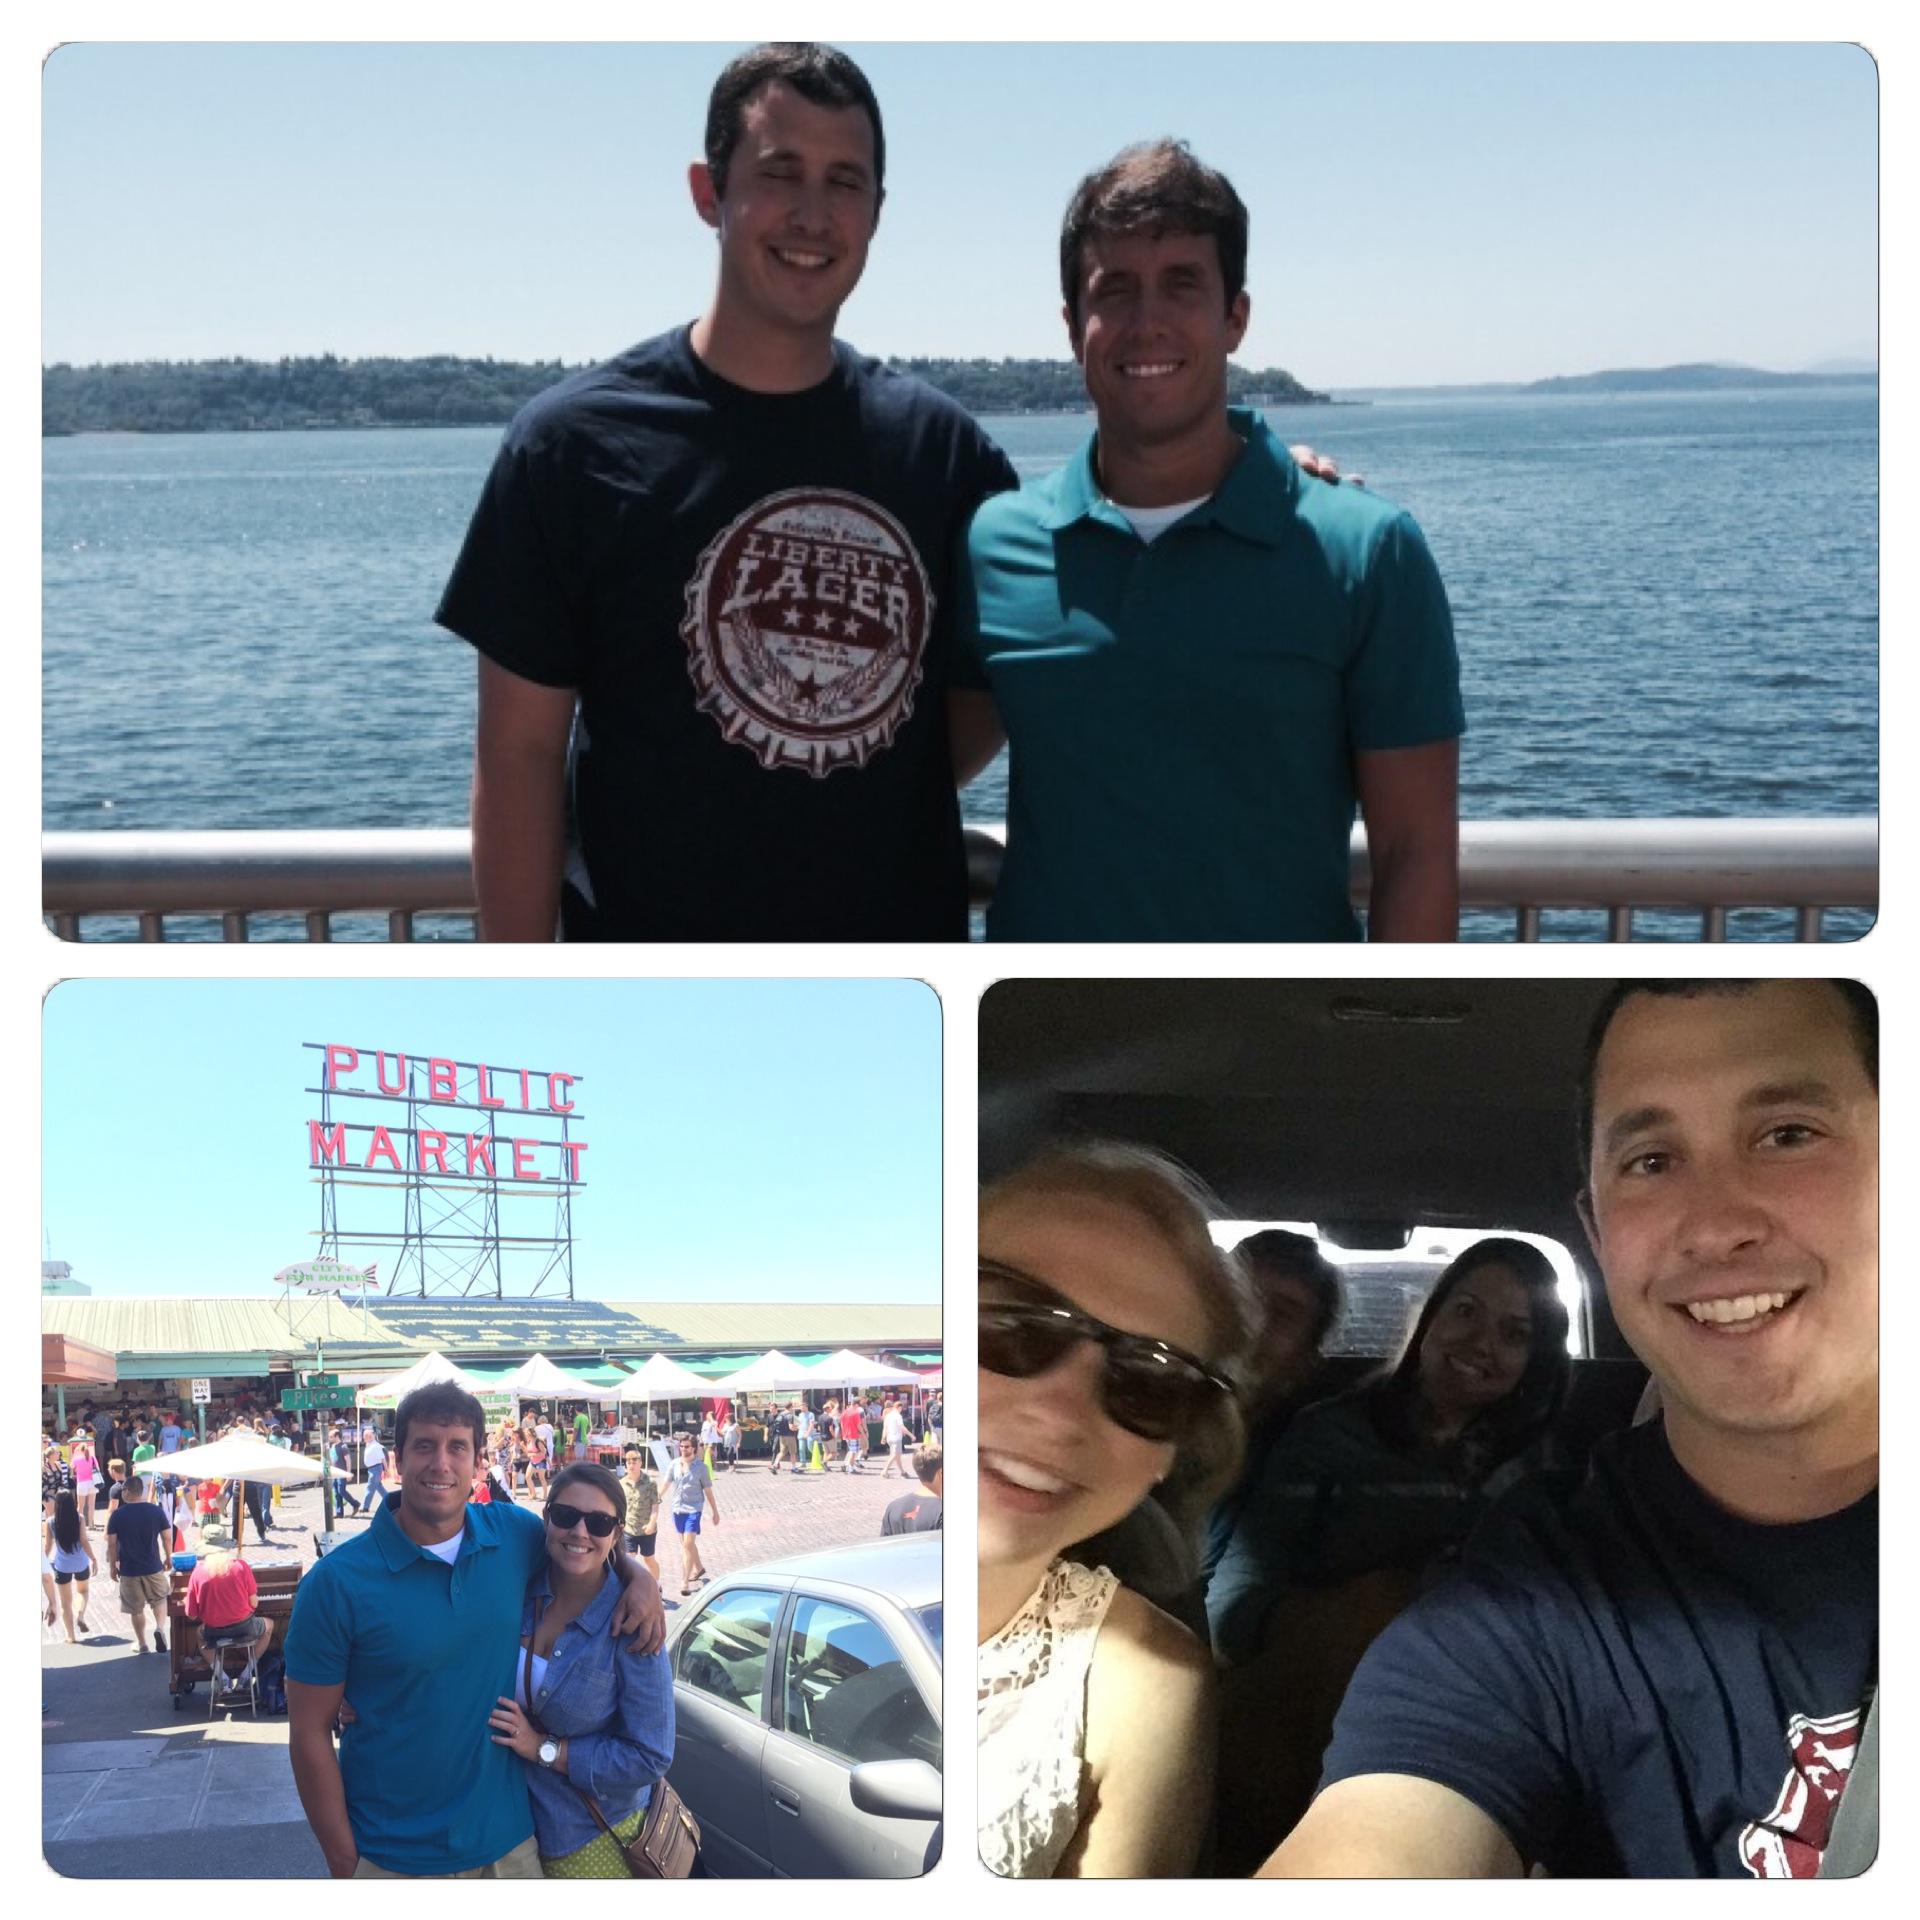 We had fun in Seattle! The top photo is of my brother and I at the Waterfront. The bottom left photo is of Sidney and I at Pike Place, and the bottom right photo is of our crew.